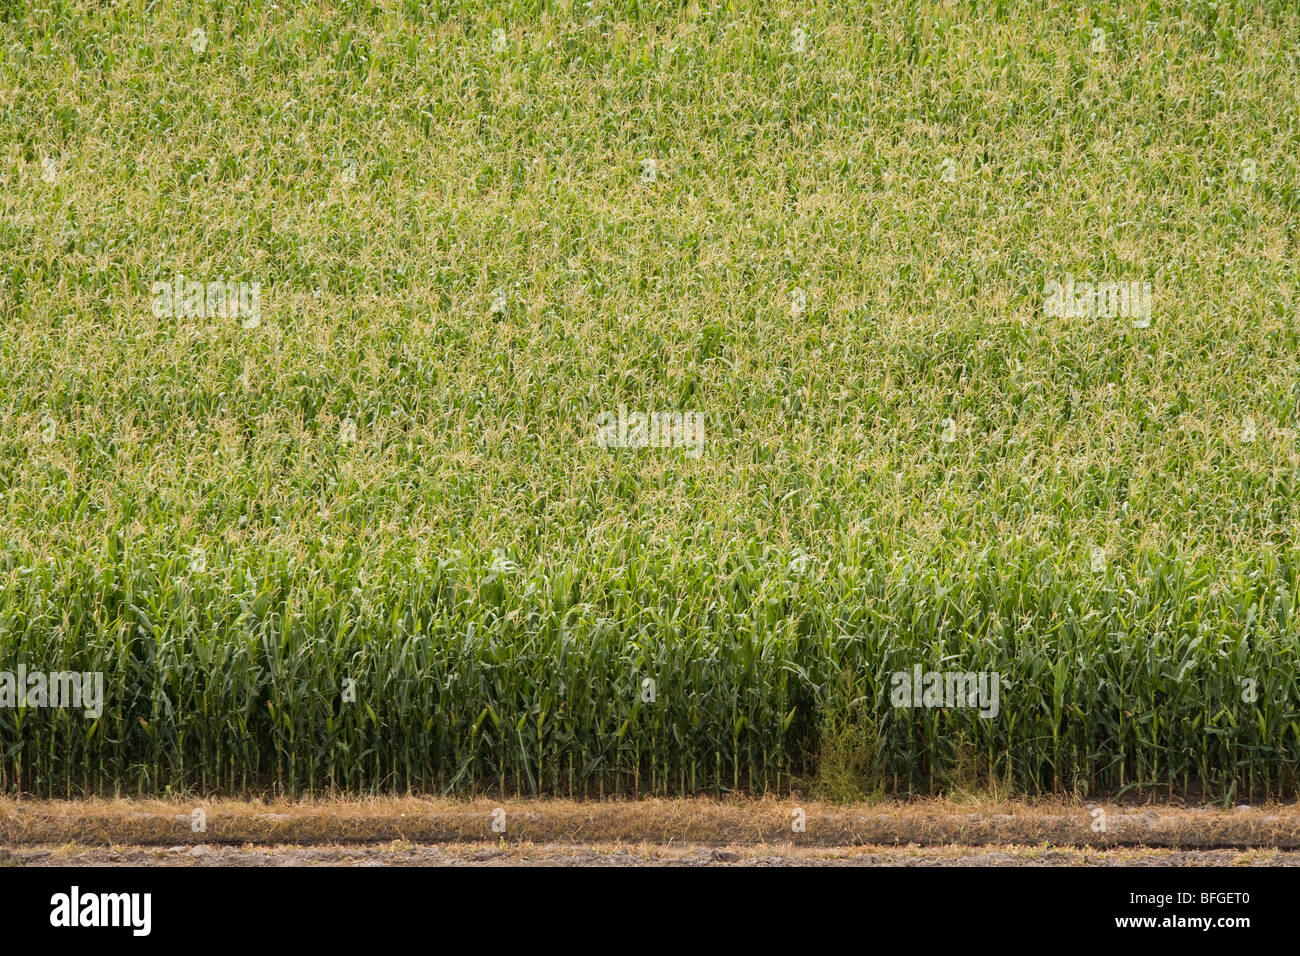 Aerial view of an American corn maize field in summer. North Platte, Nebraska, NE US USA. - Stock Image